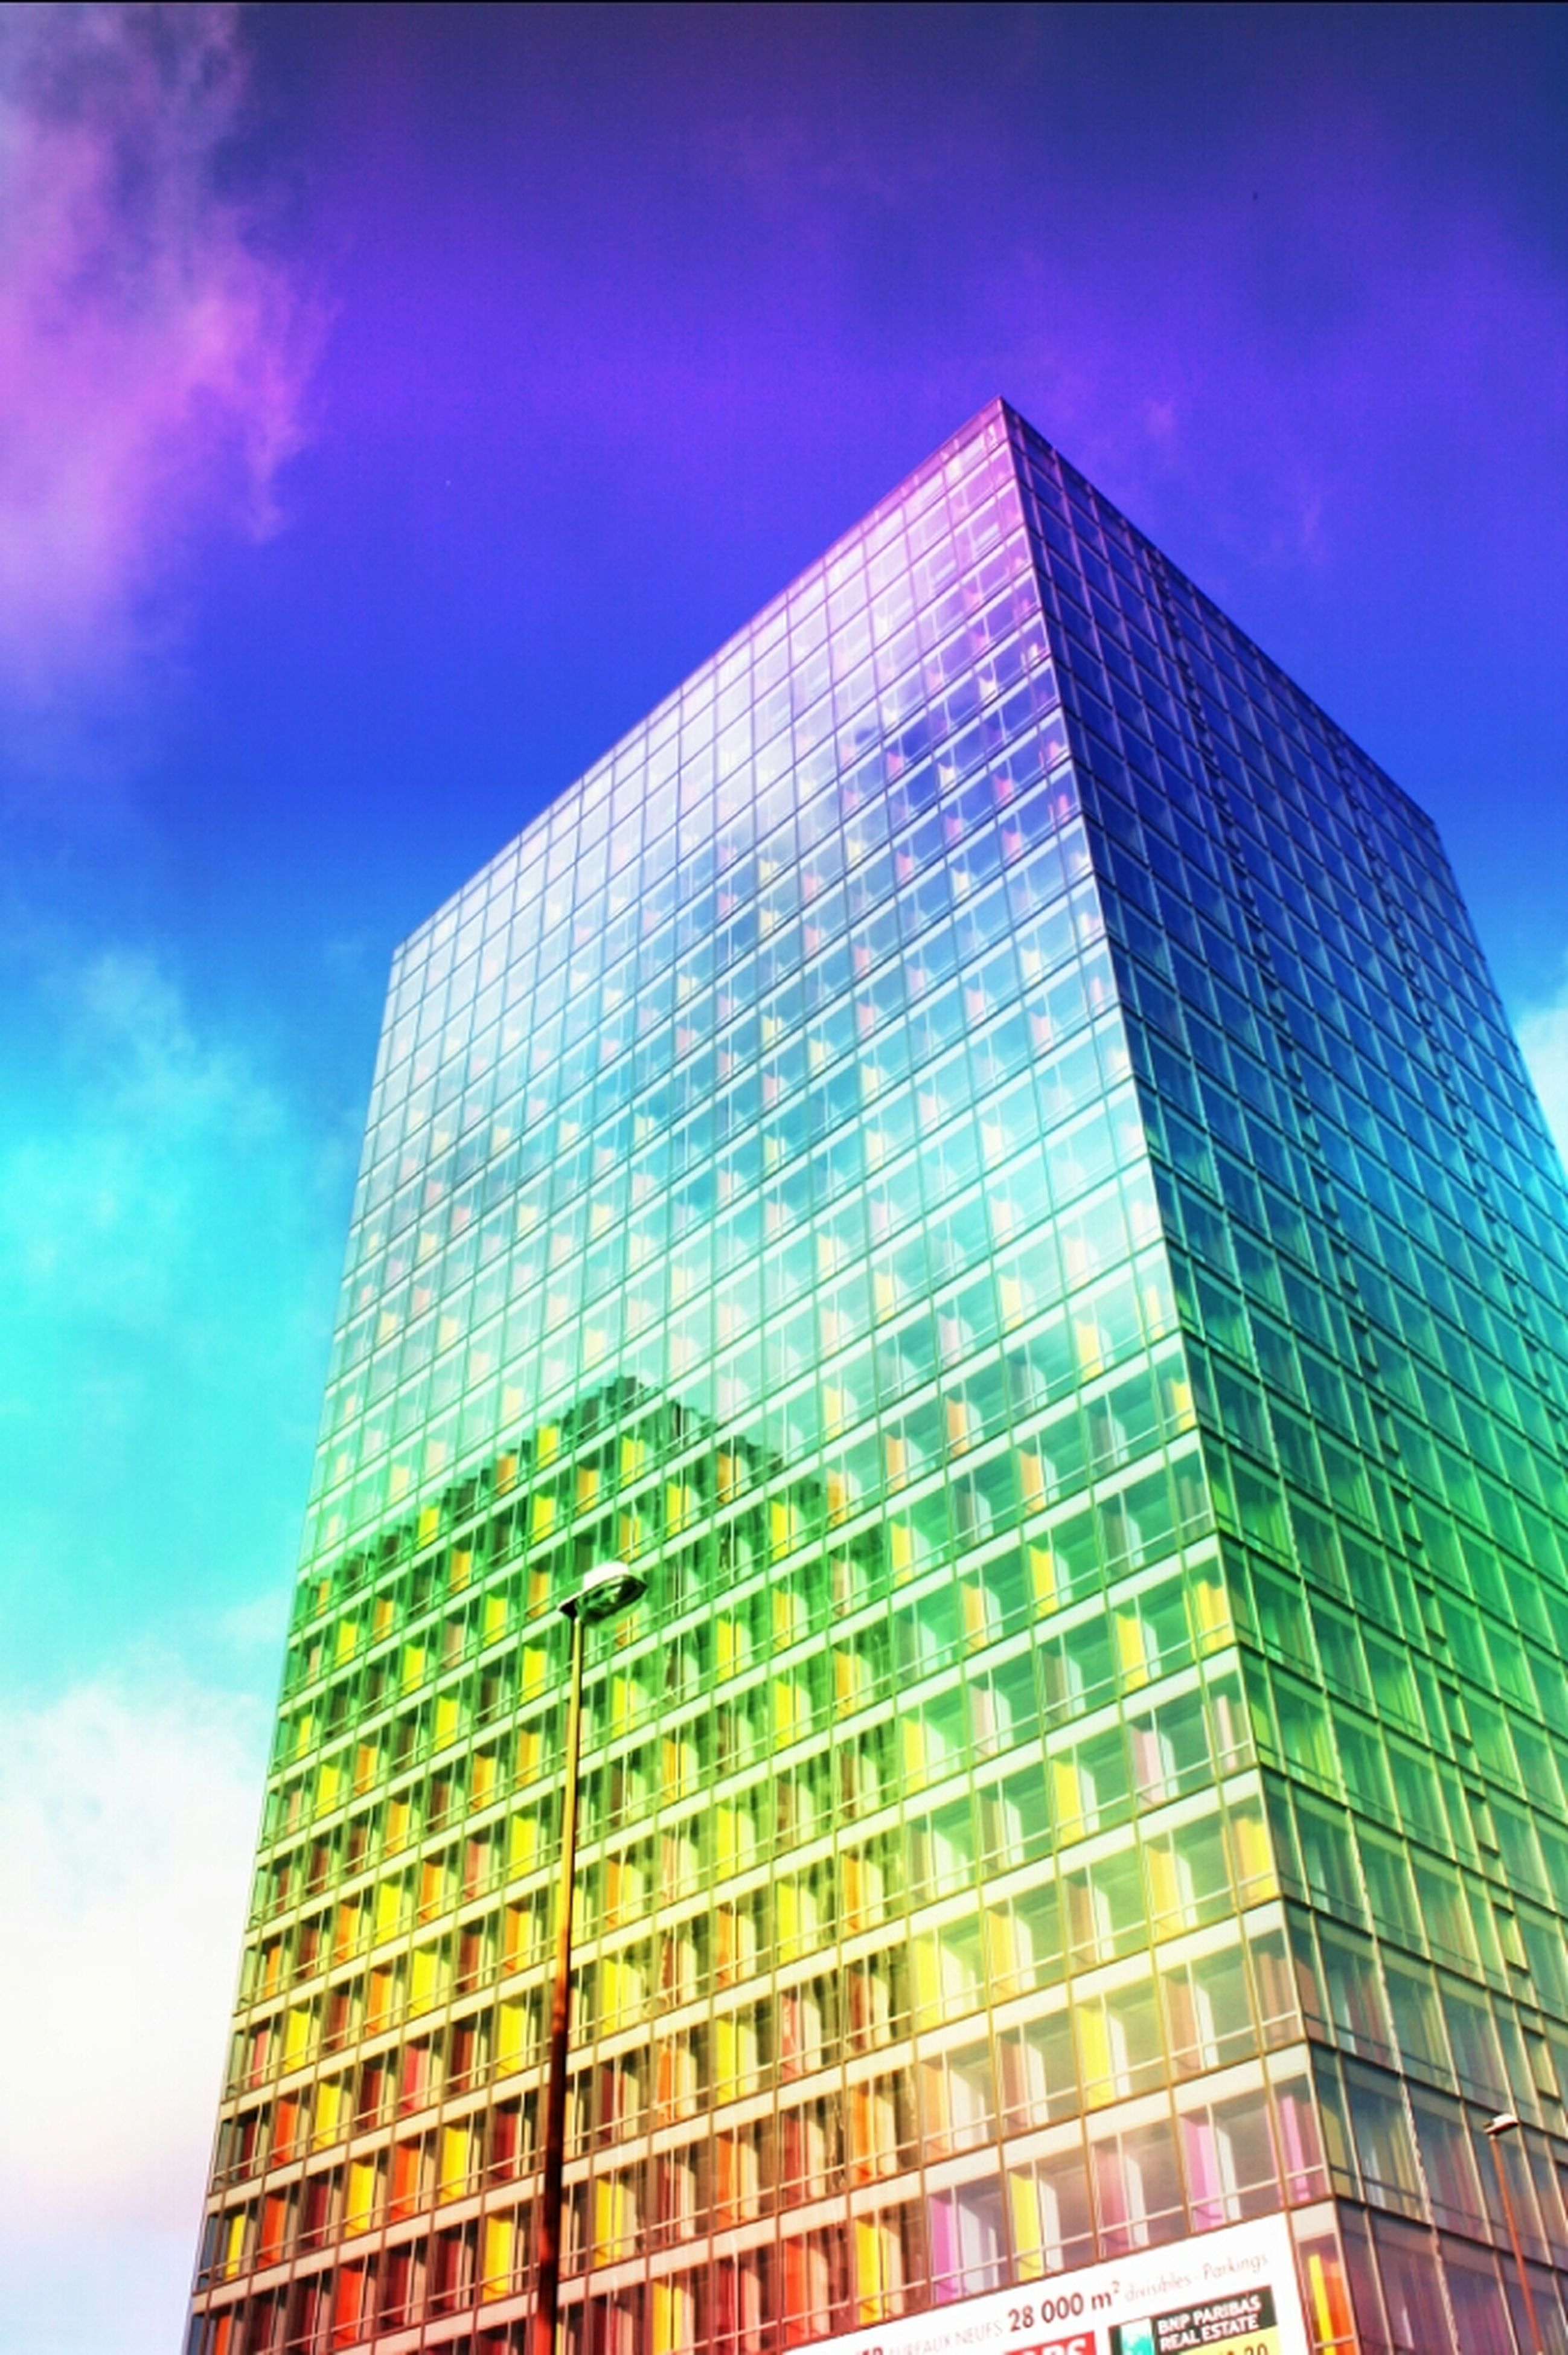 low angle view, architecture, building exterior, modern, built structure, office building, skyscraper, tall - high, city, tower, glass - material, sky, reflection, building, tall, cloud - sky, day, outdoors, no people, cloud